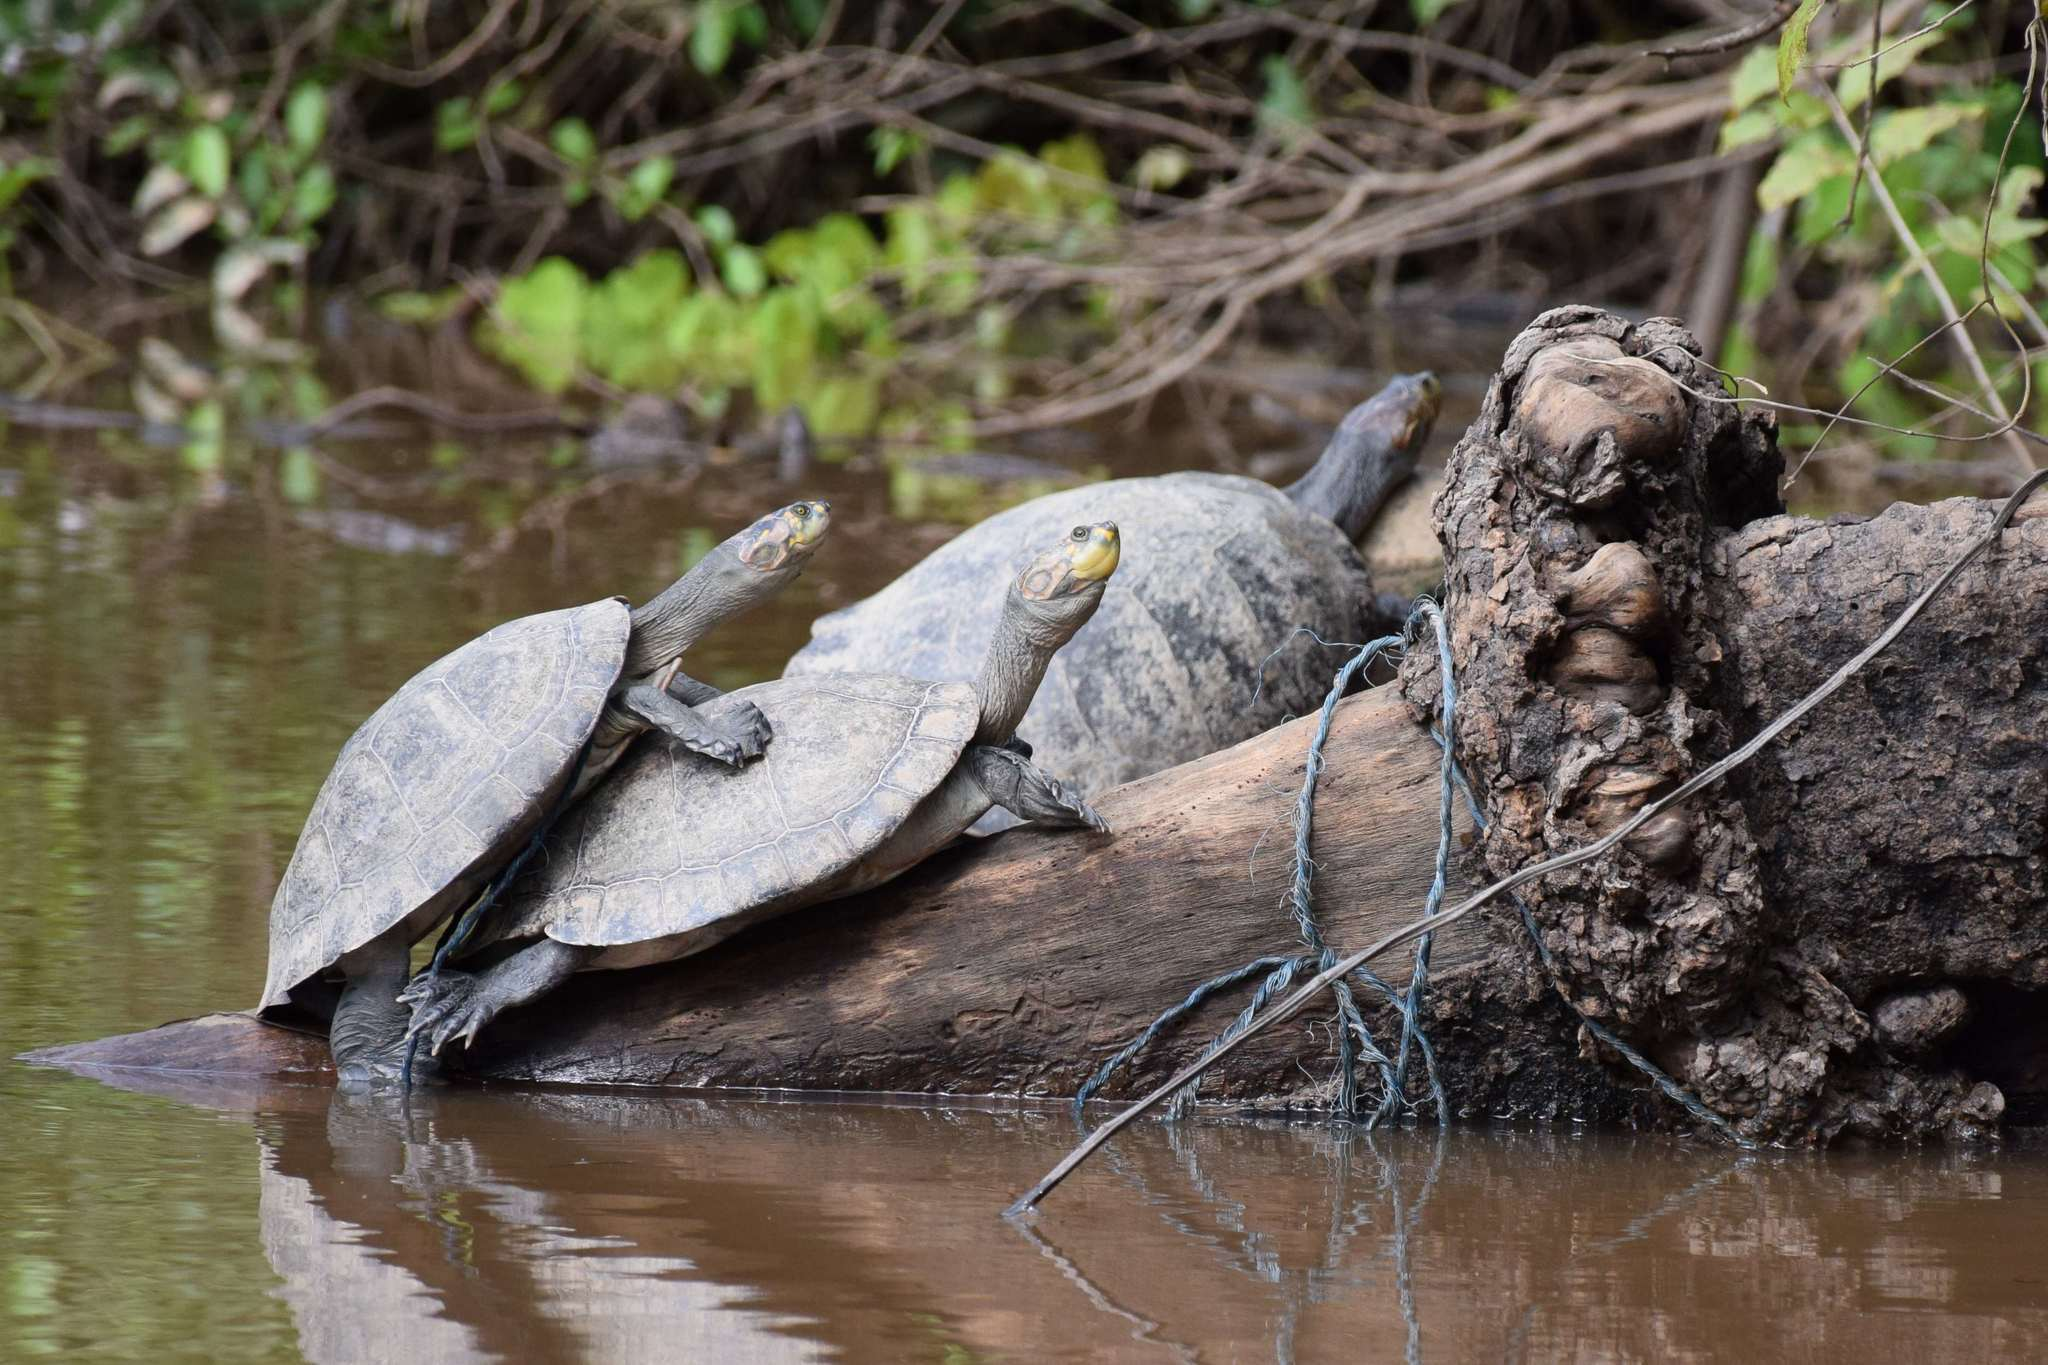 Image of Yellow-spotted river turtle